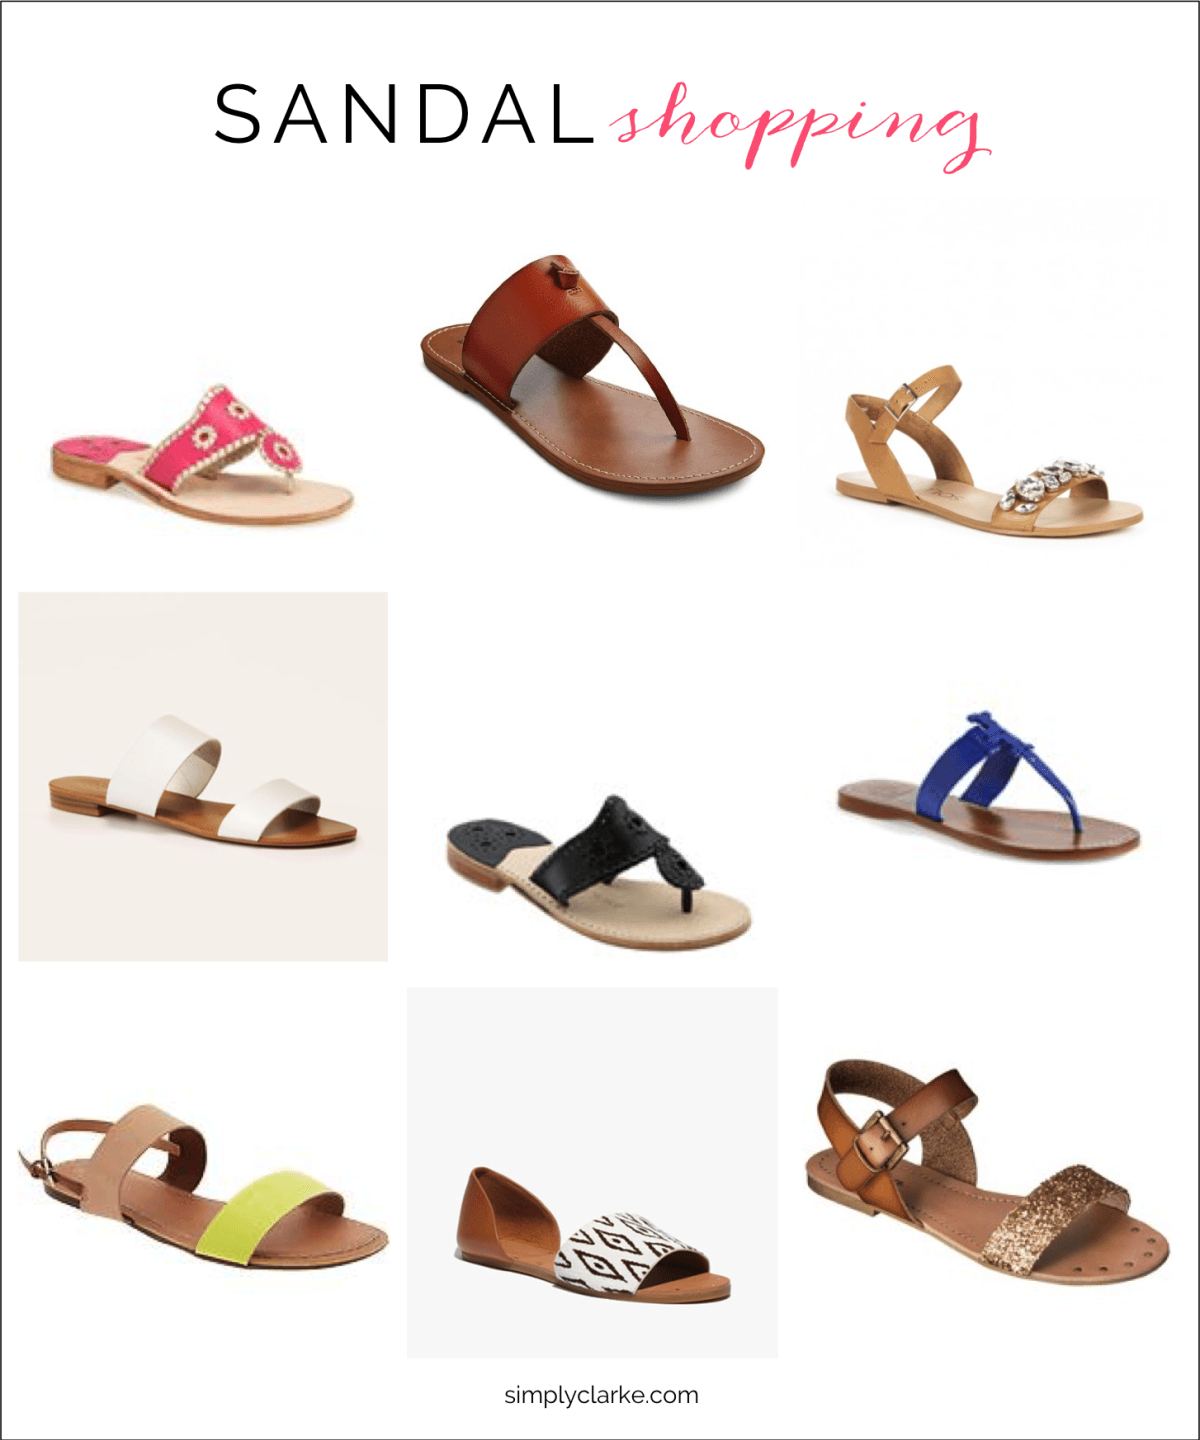 ef8eeea1481fbf Sandal Shopping  summersandals  sandals